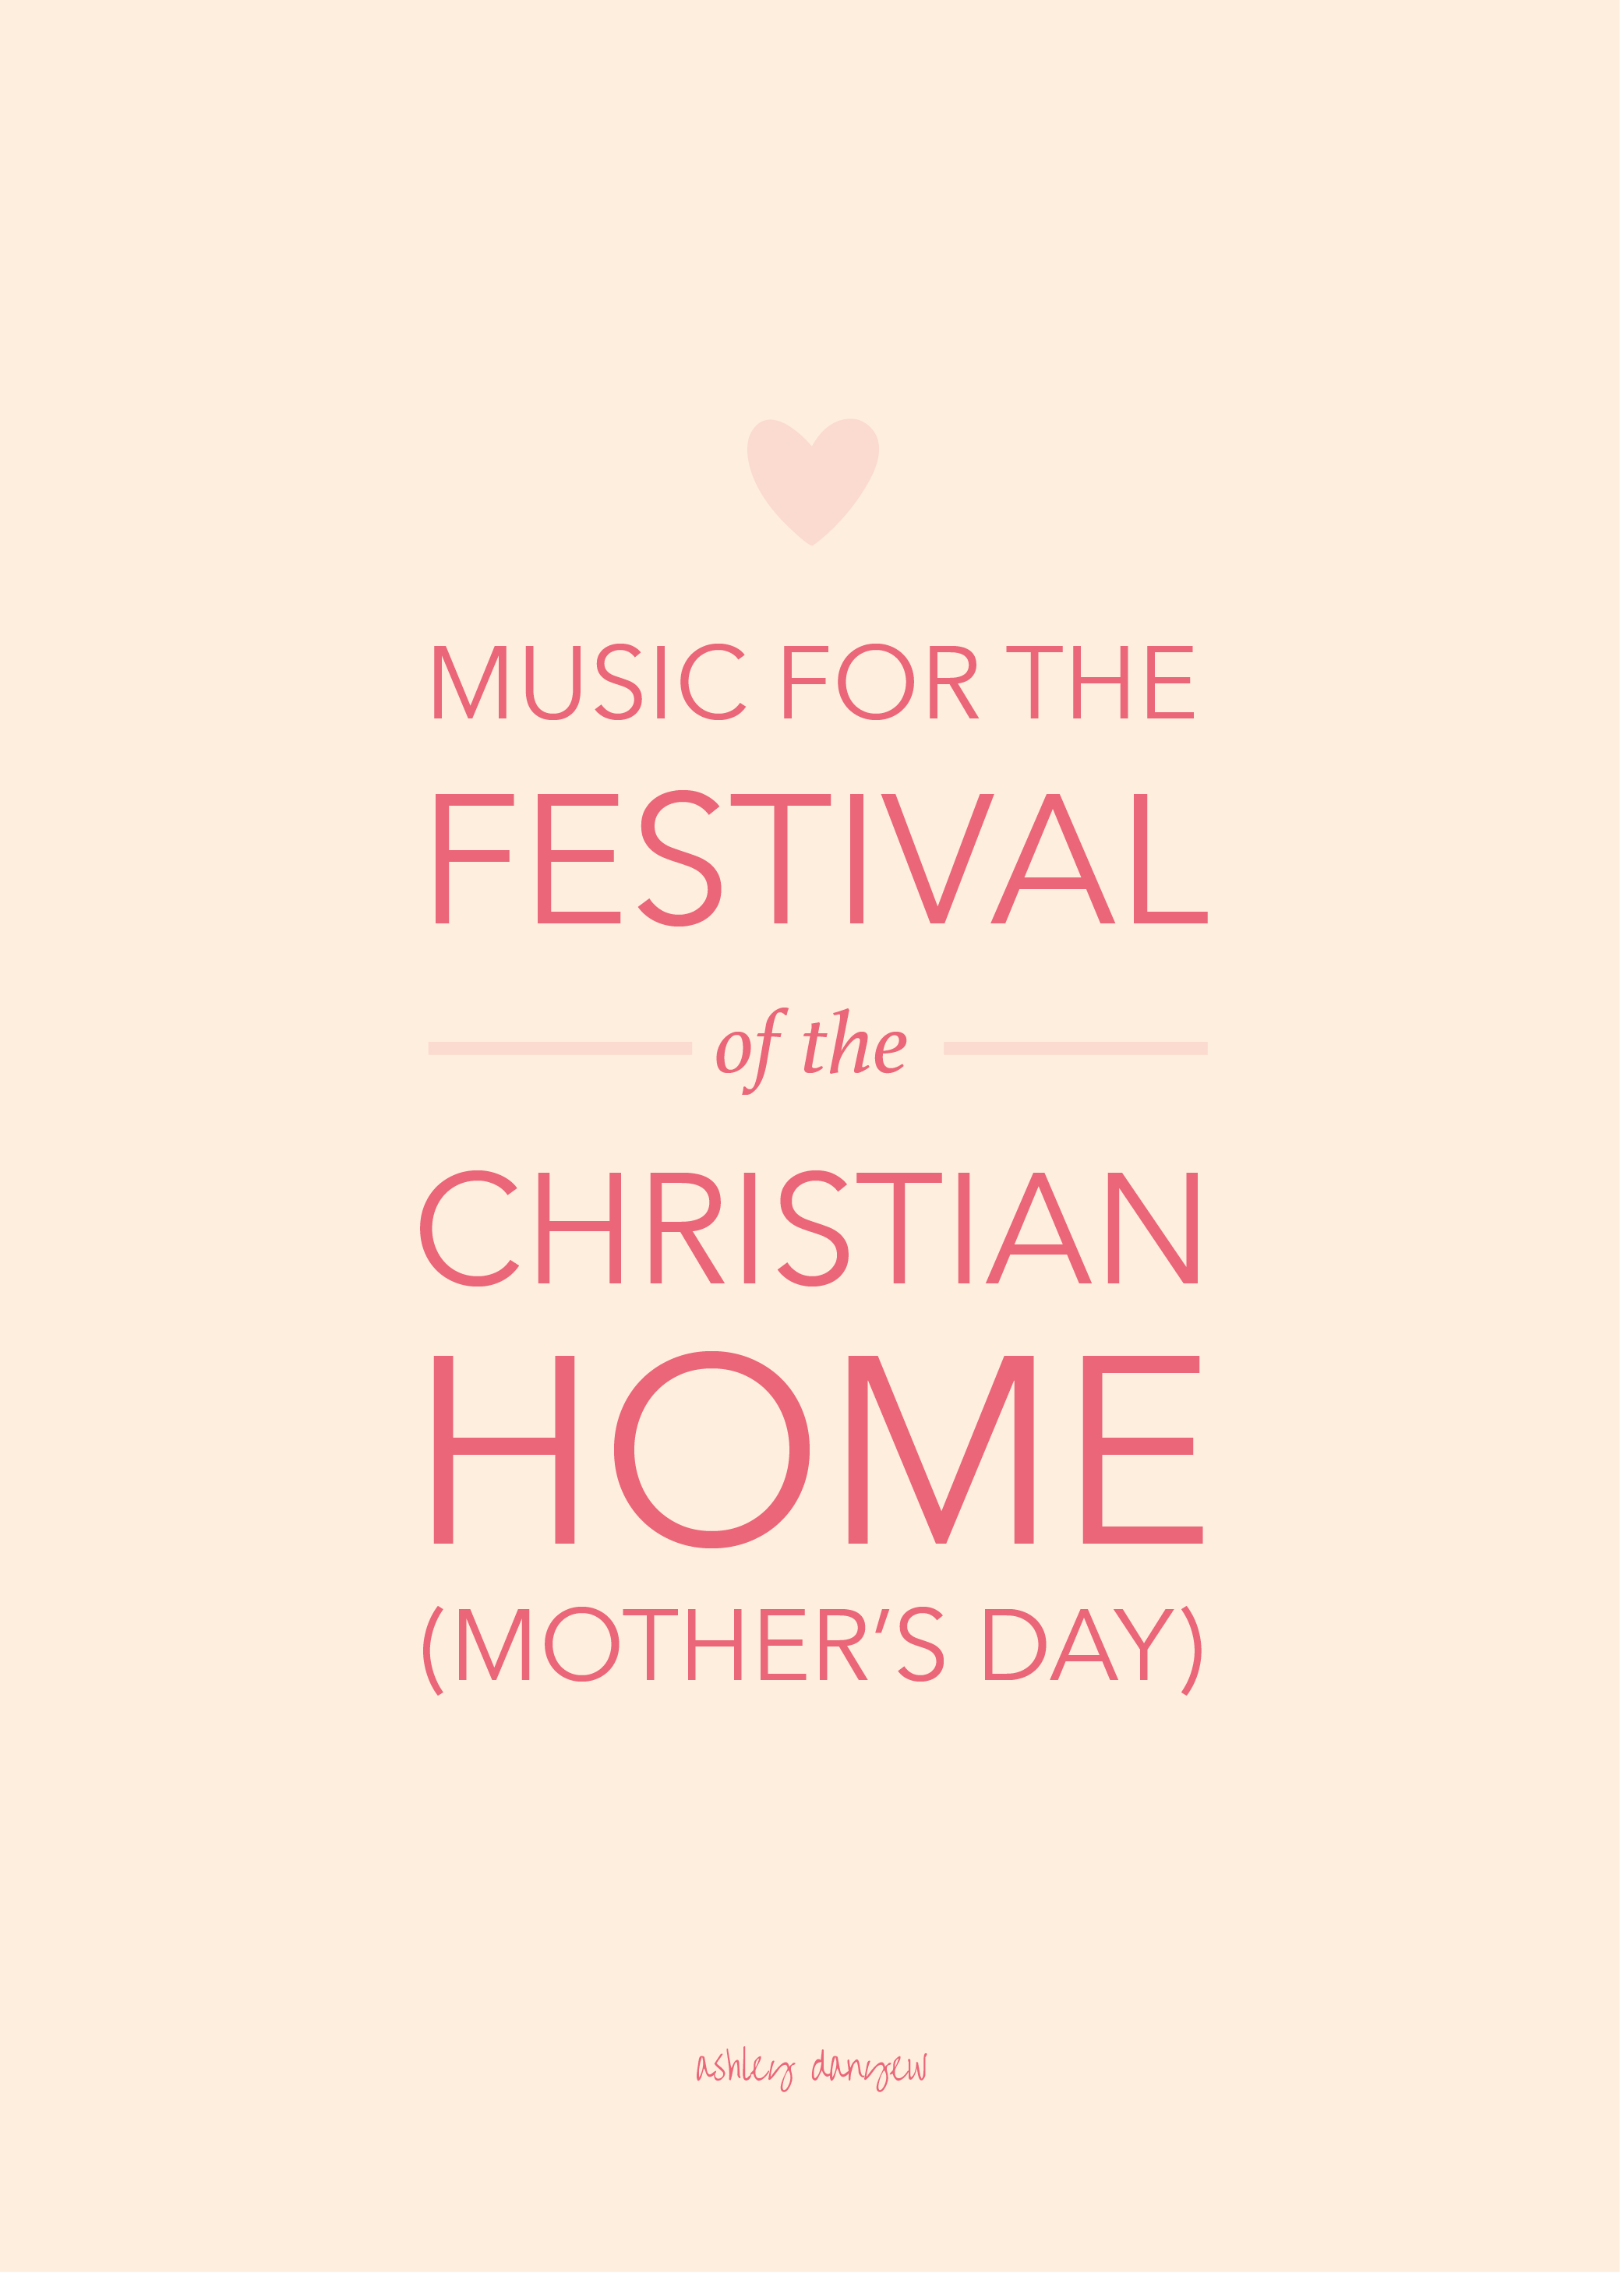 Music for the Festival of the Christian Home (Mother's Day)-08.png